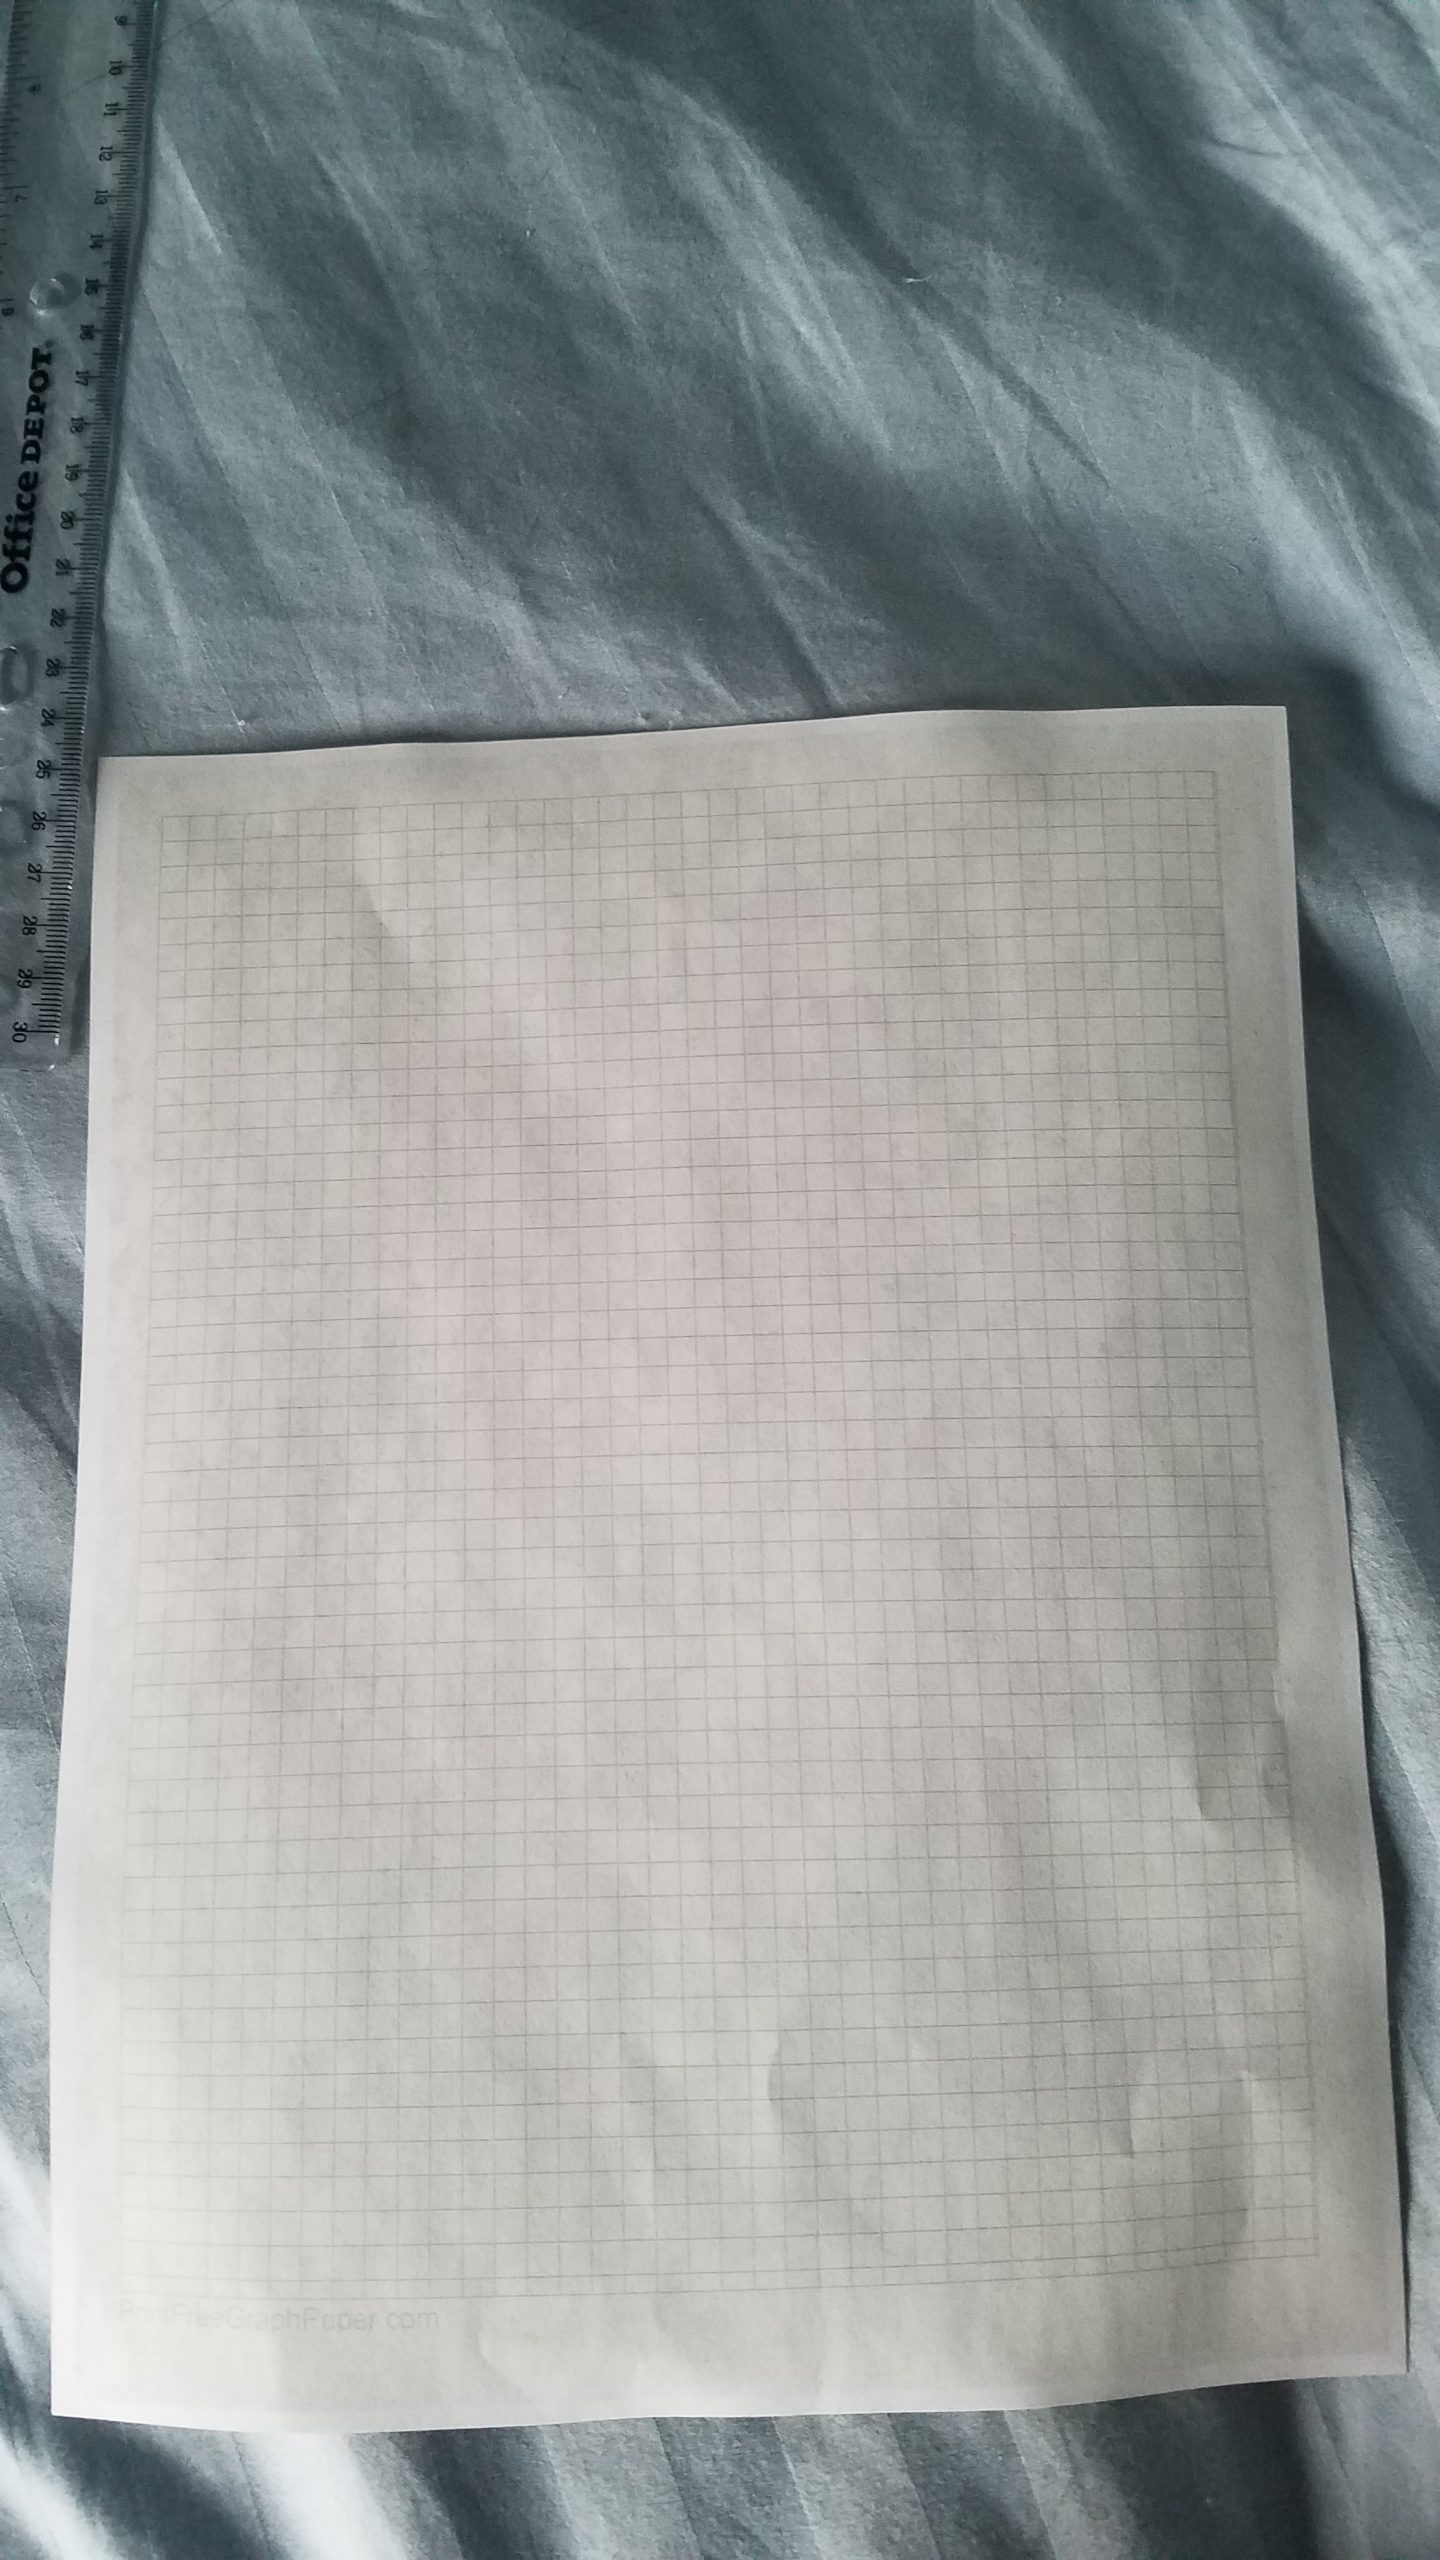 The graph paper on the back of my pictures.